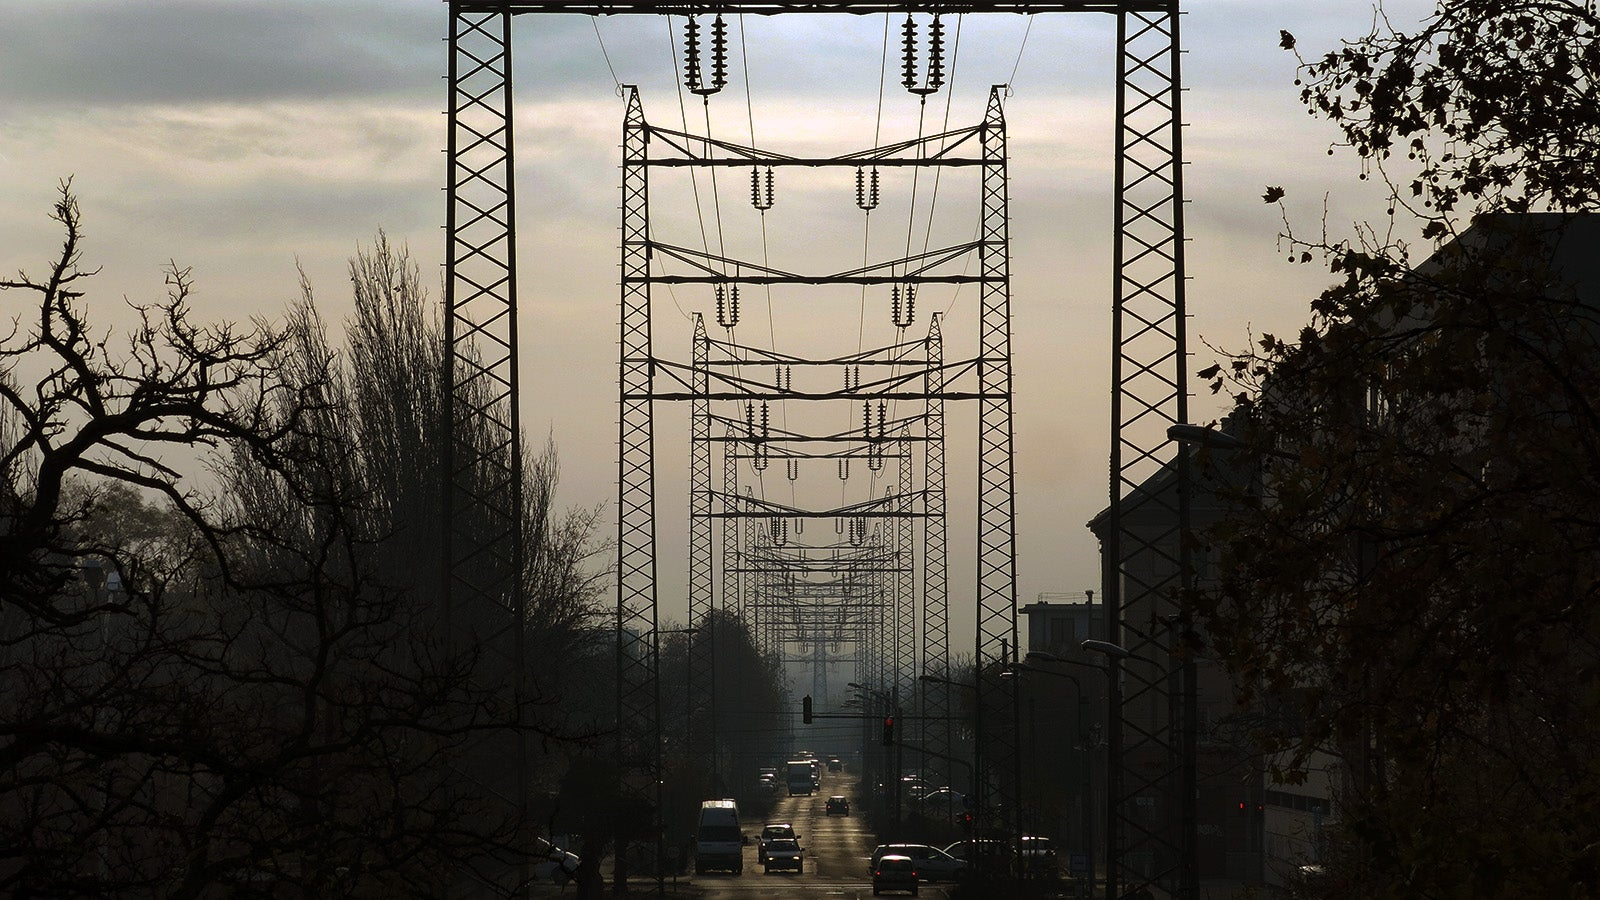 Fearless Engineering: This Street Stretches Out Between Electricity Pylons